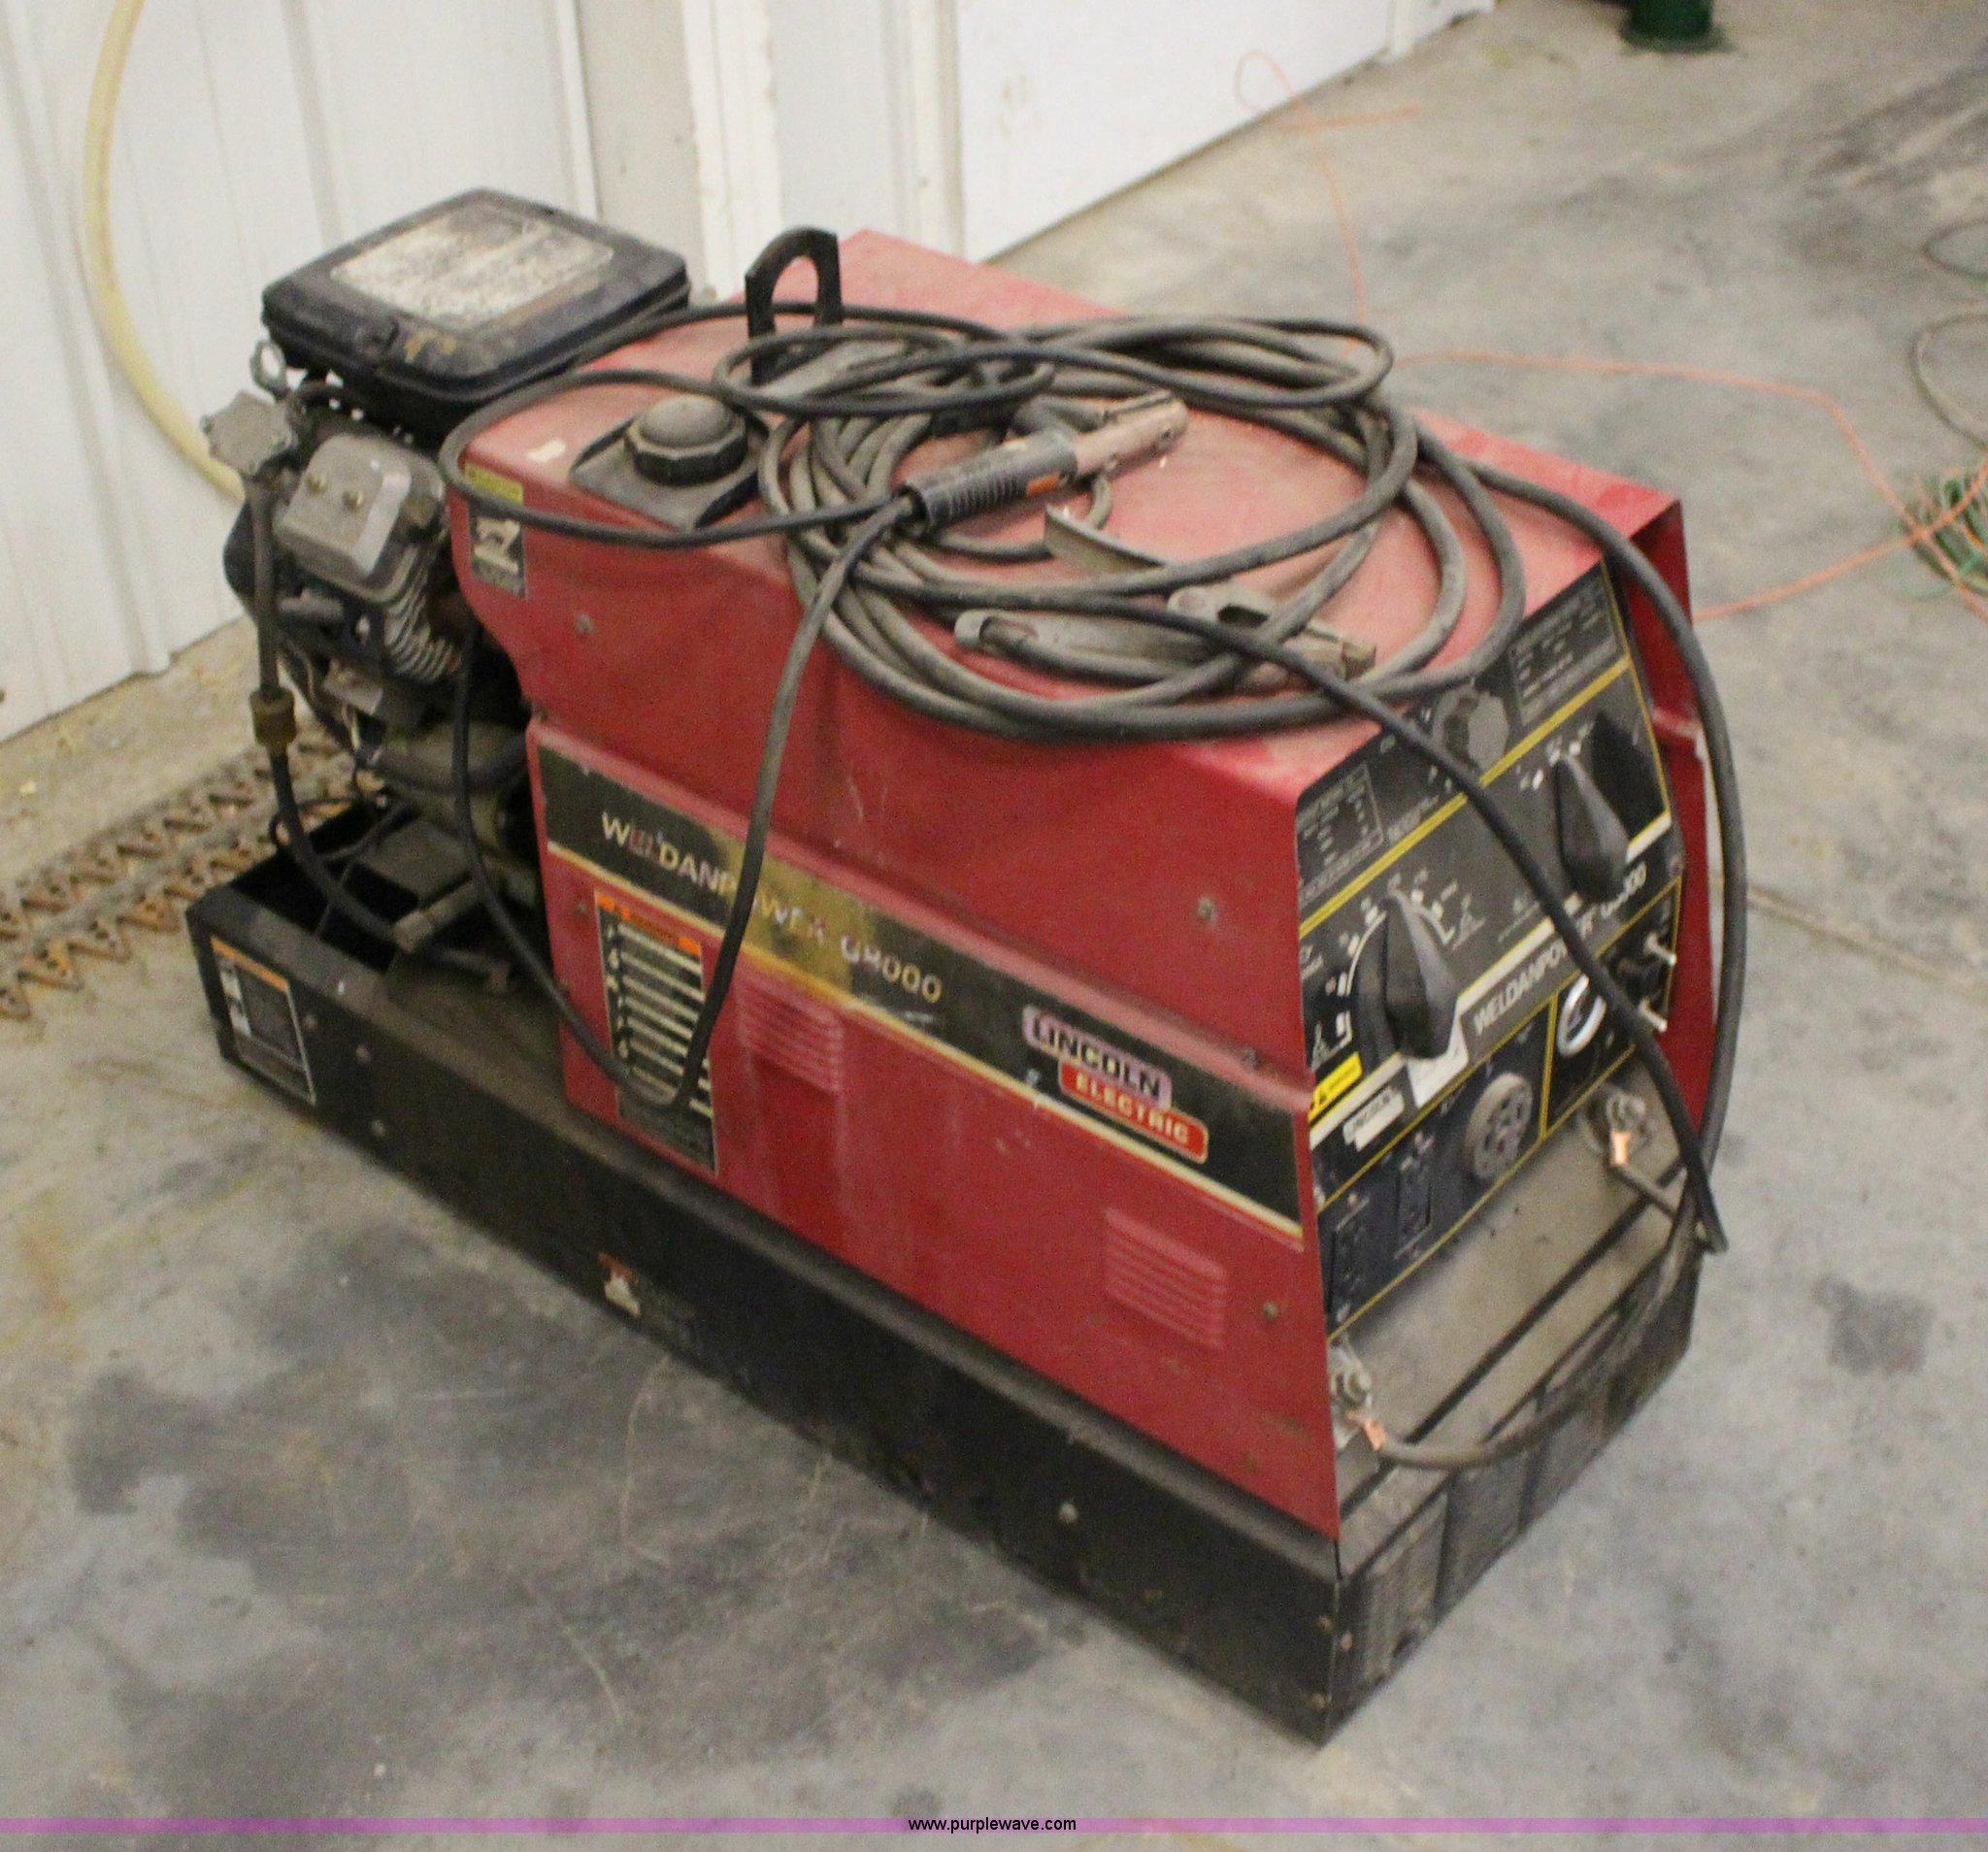 Lincoln G8000 welder/generator | Item F7671 | SOLD! May 20 V